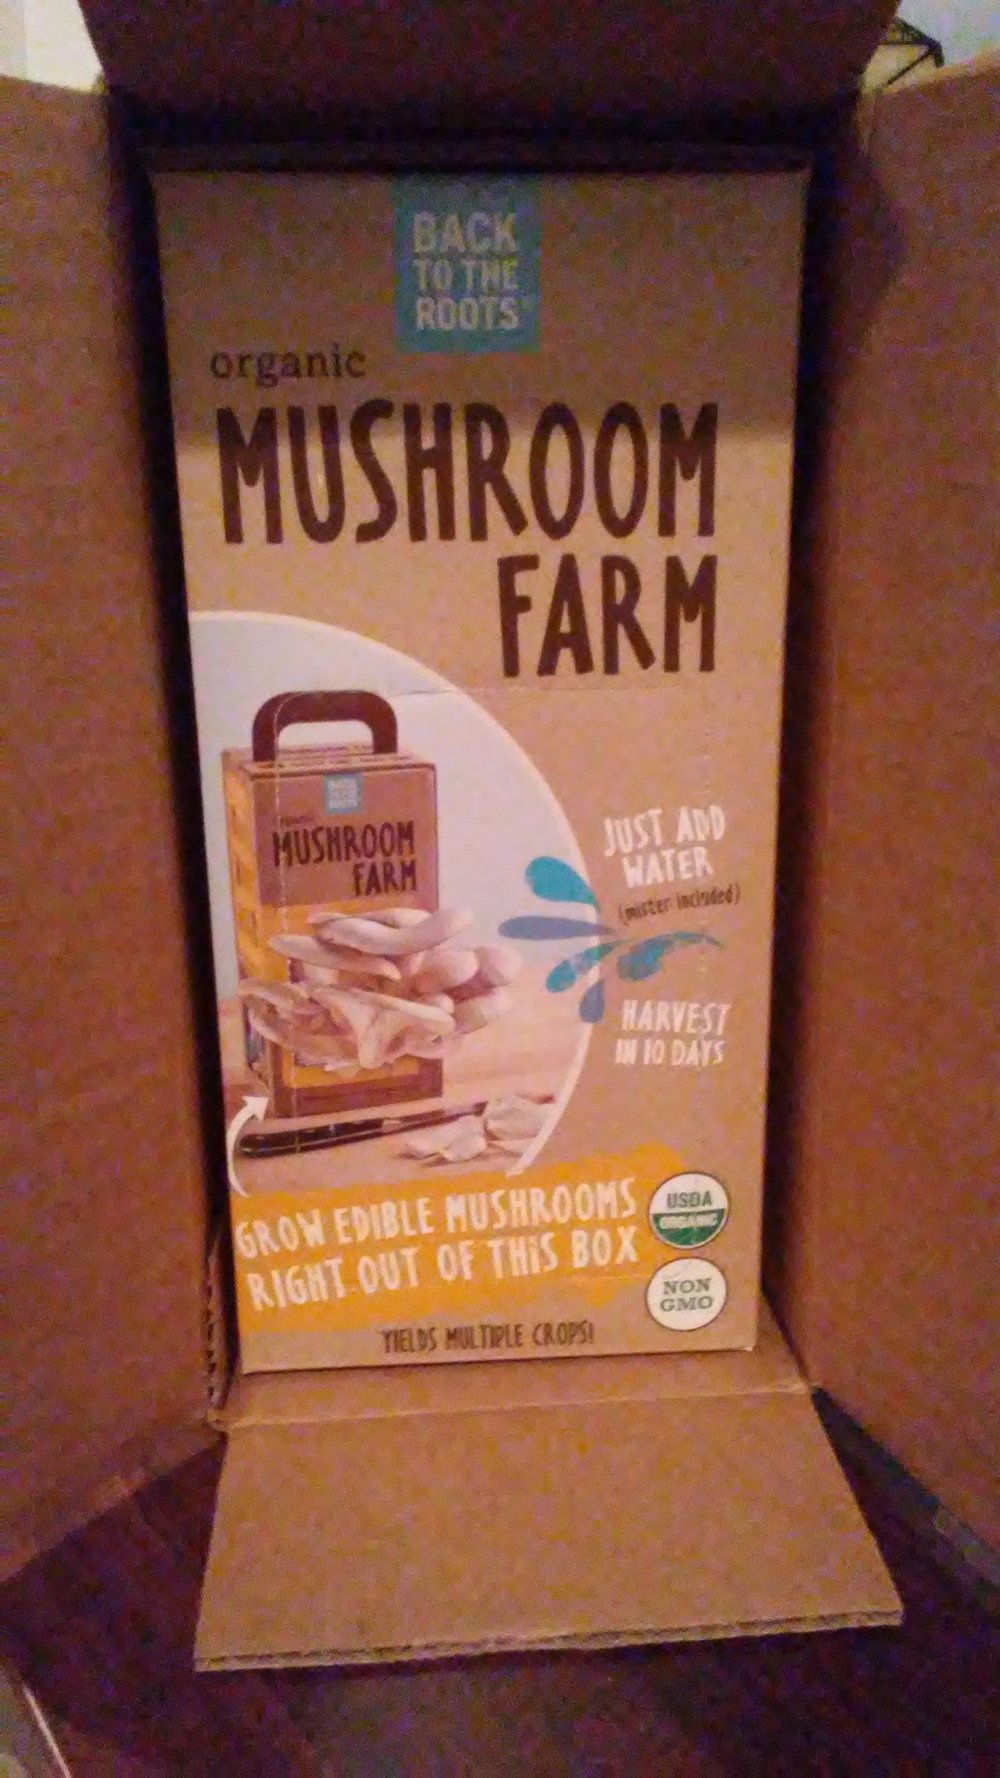 The mushrooms grow right in the box! I mean, the box within the box.